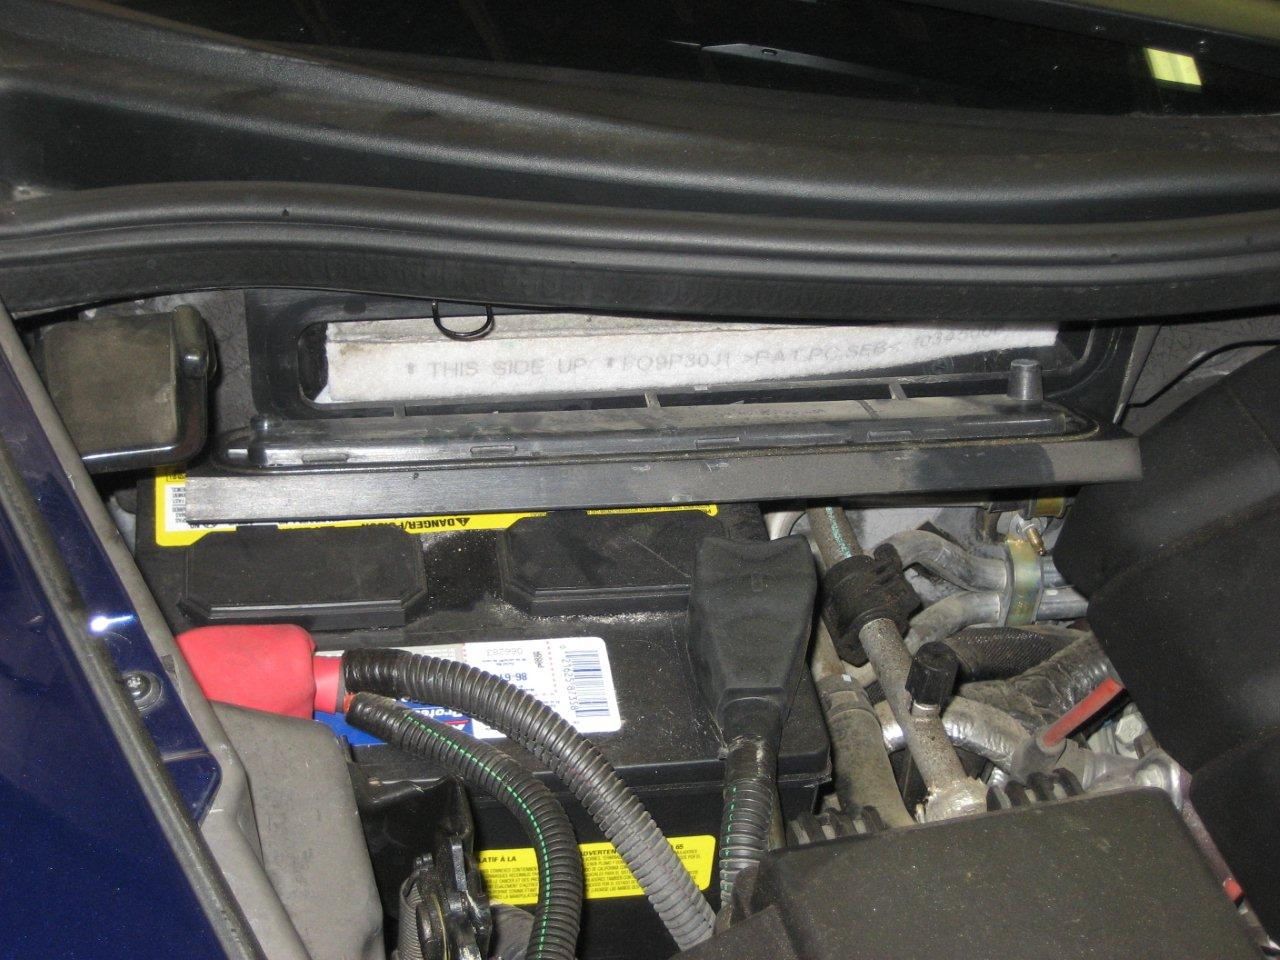 C6 Corvette Interior Fuse Box moreover  in addition LK03A moreover Forum viewtopic in addition 63 67 Glove Box Liner With Clips. on c5 corvette glove box